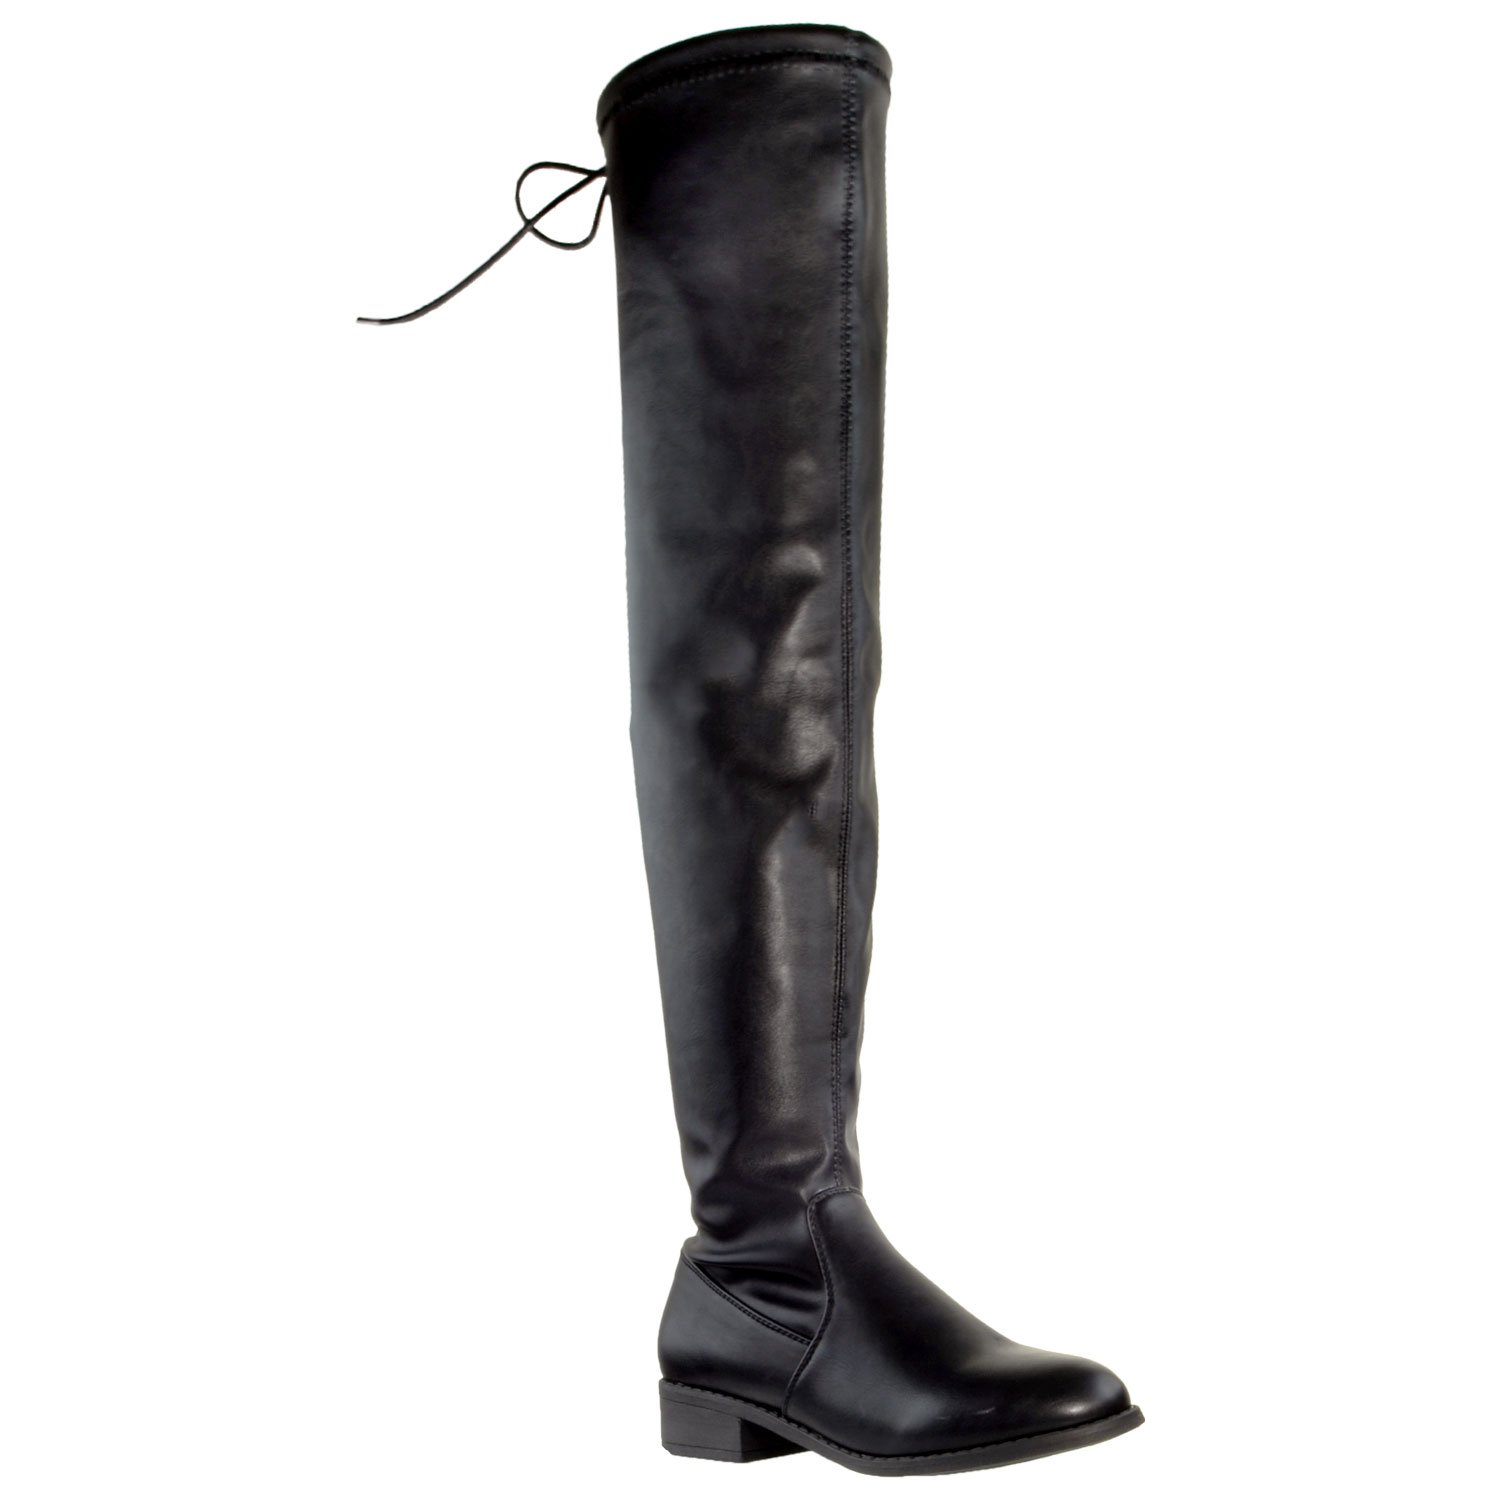 Generation Y Womens Knee High Boots Lace Up Block Heel Over The Knee Riding Boots Faux Leather Black SZ 8.5